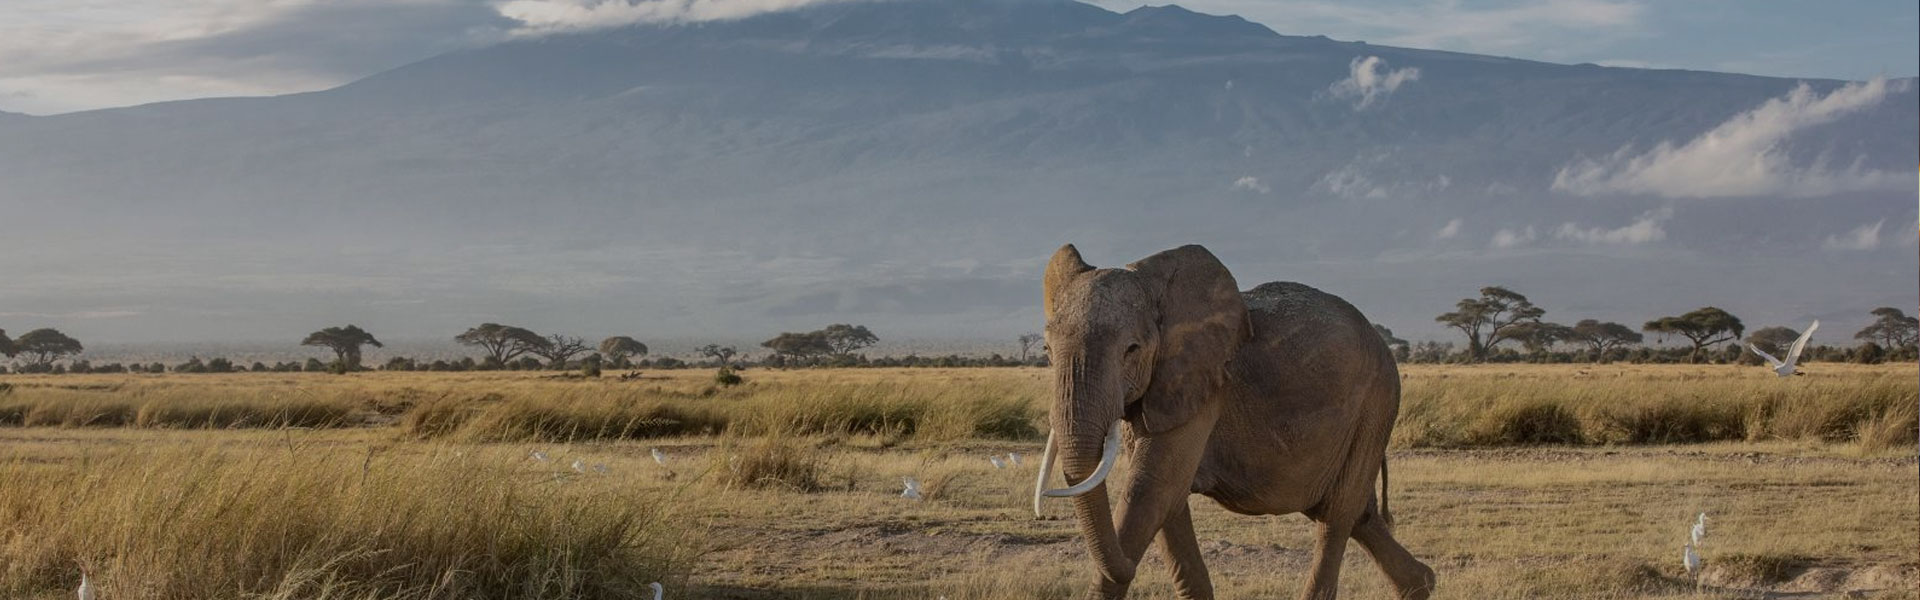 Tanzania Travel Tips To Know Before You Go